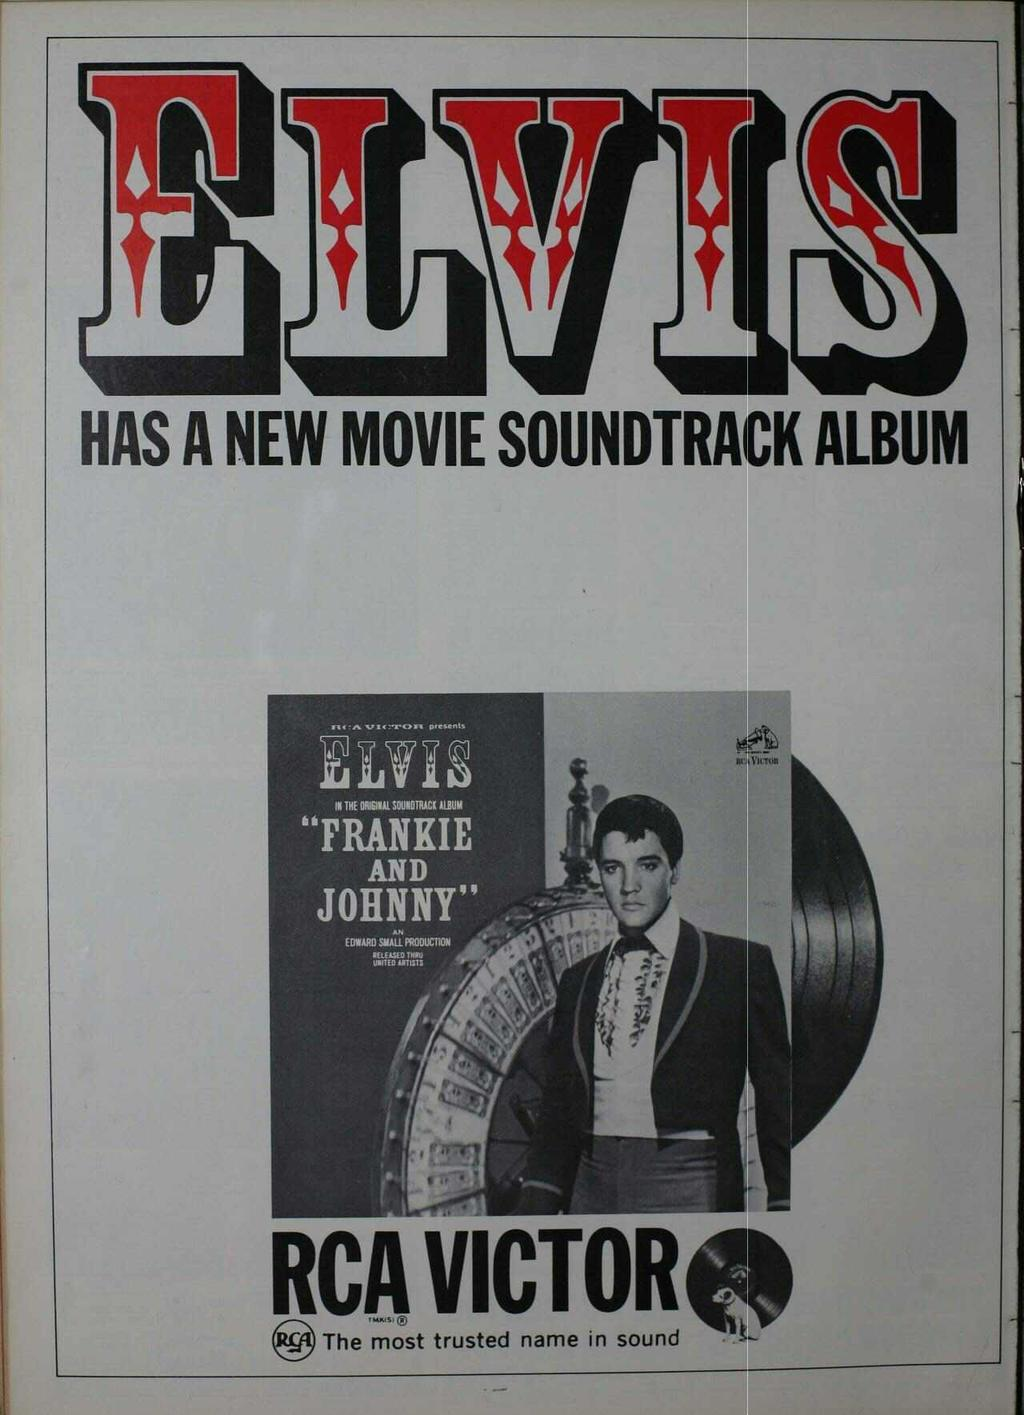 "!1 i HAS A NEW MOVIE SOUNDTRACK ALBUM s4'a V[c'rc >za presents LA718 IN THE ORIGINAL SOUNDTRACK ALBUM ""FRANKIE"